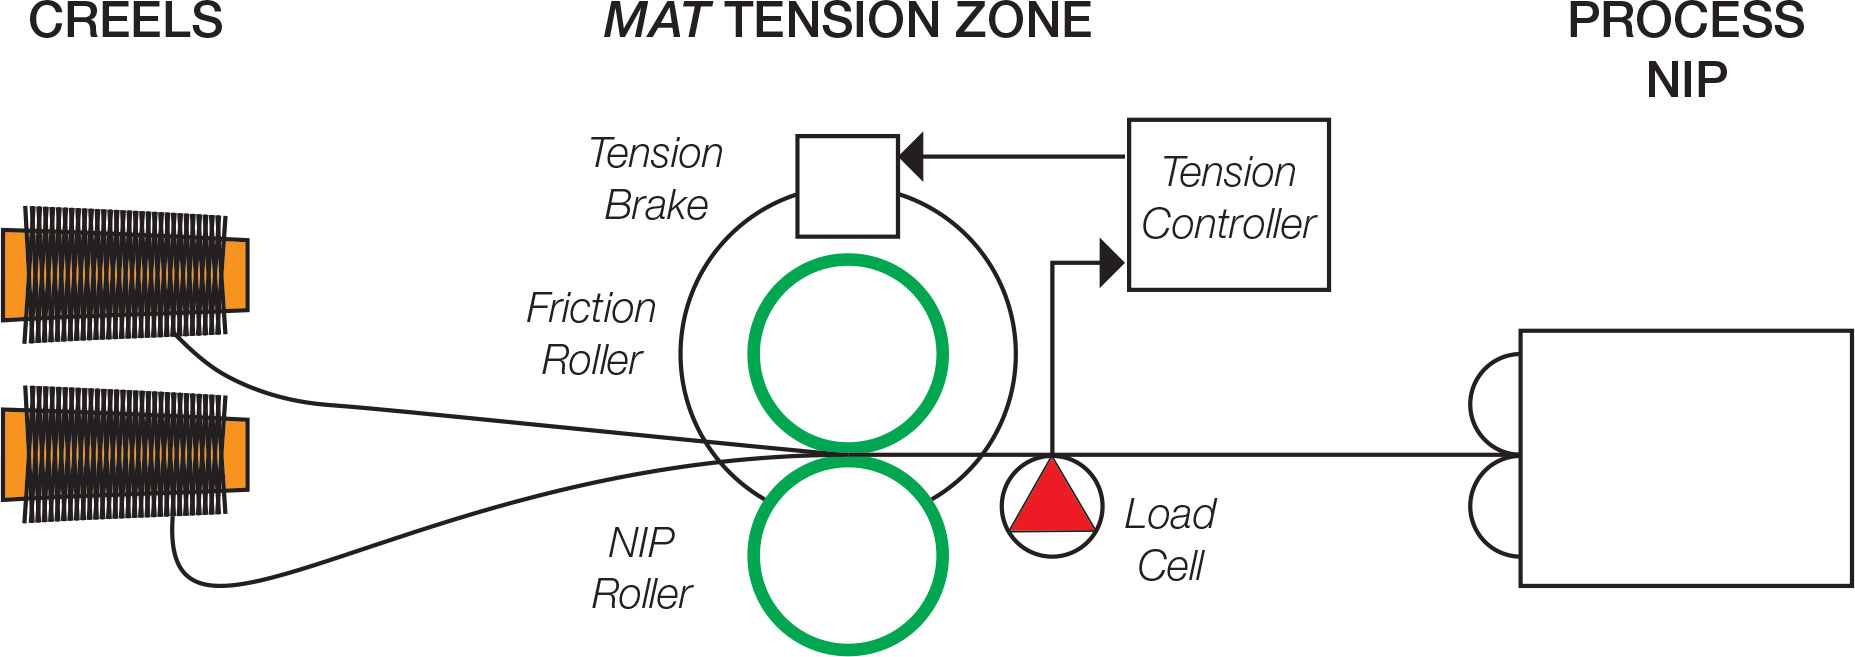 hight resolution of modular automated tensioner process diagram